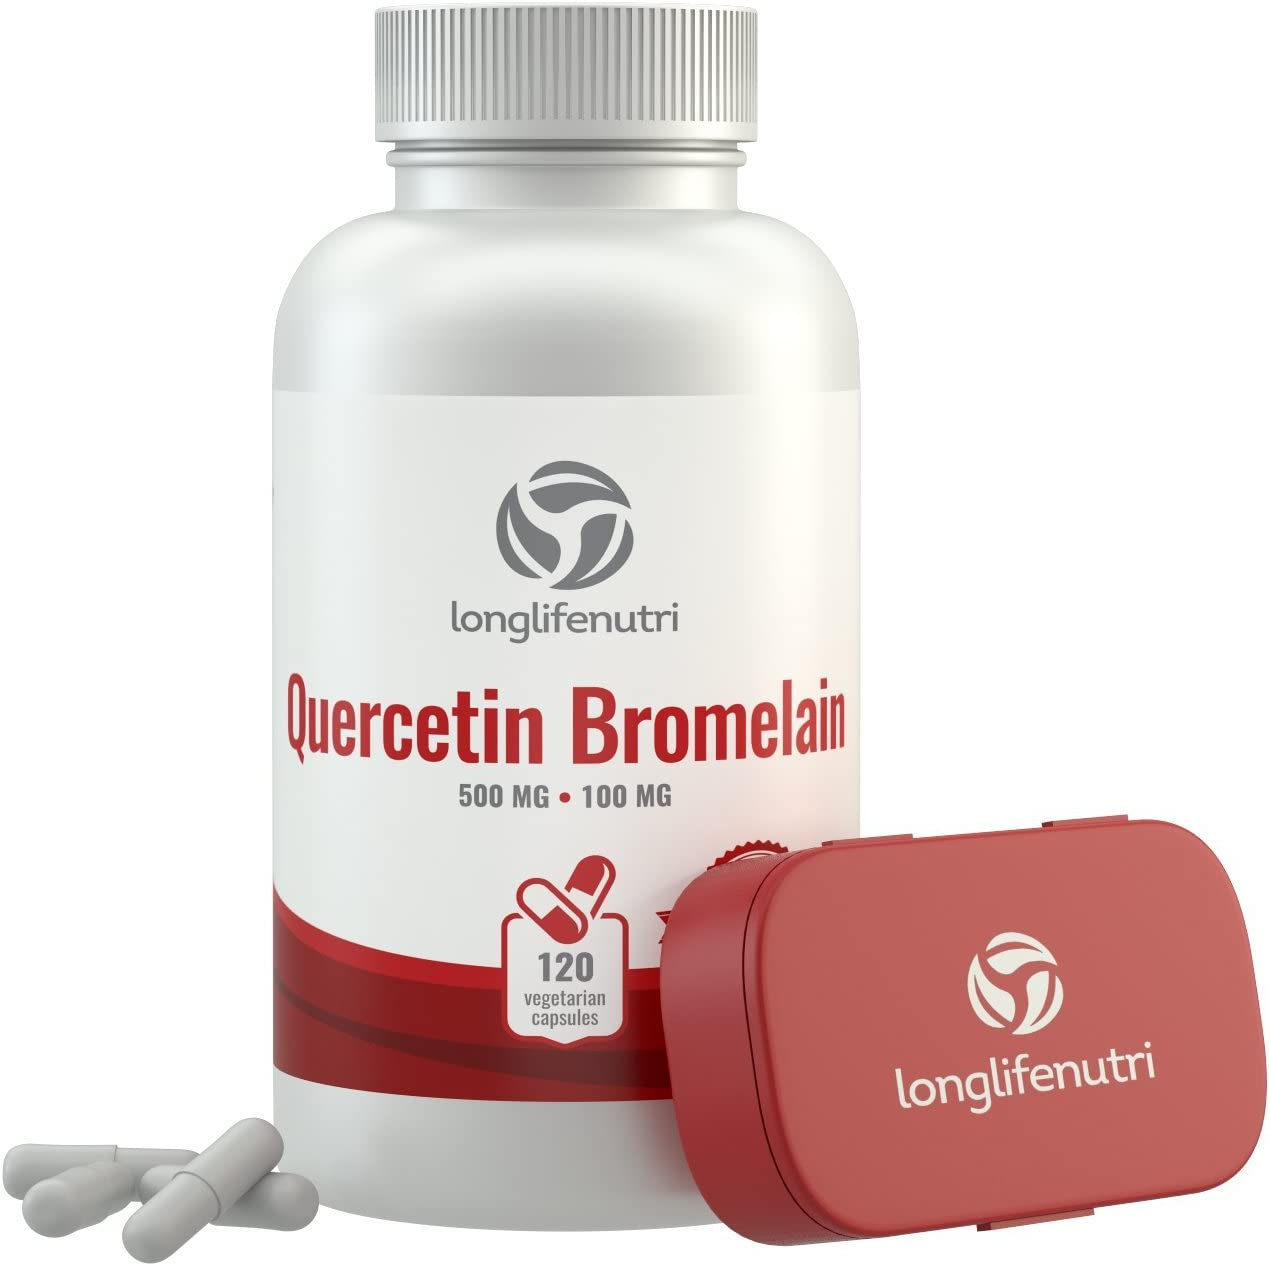 Quercetin 500mg with Bromelain 100mg 120 Vegetarian Capsules | Natural Anti Inflammatory Antioxidant Supplement | Allergy Relief Complex | Heart Health | Dihydrate Pure Powder Extract Cap 500 mg Plus: Health & Personal Care